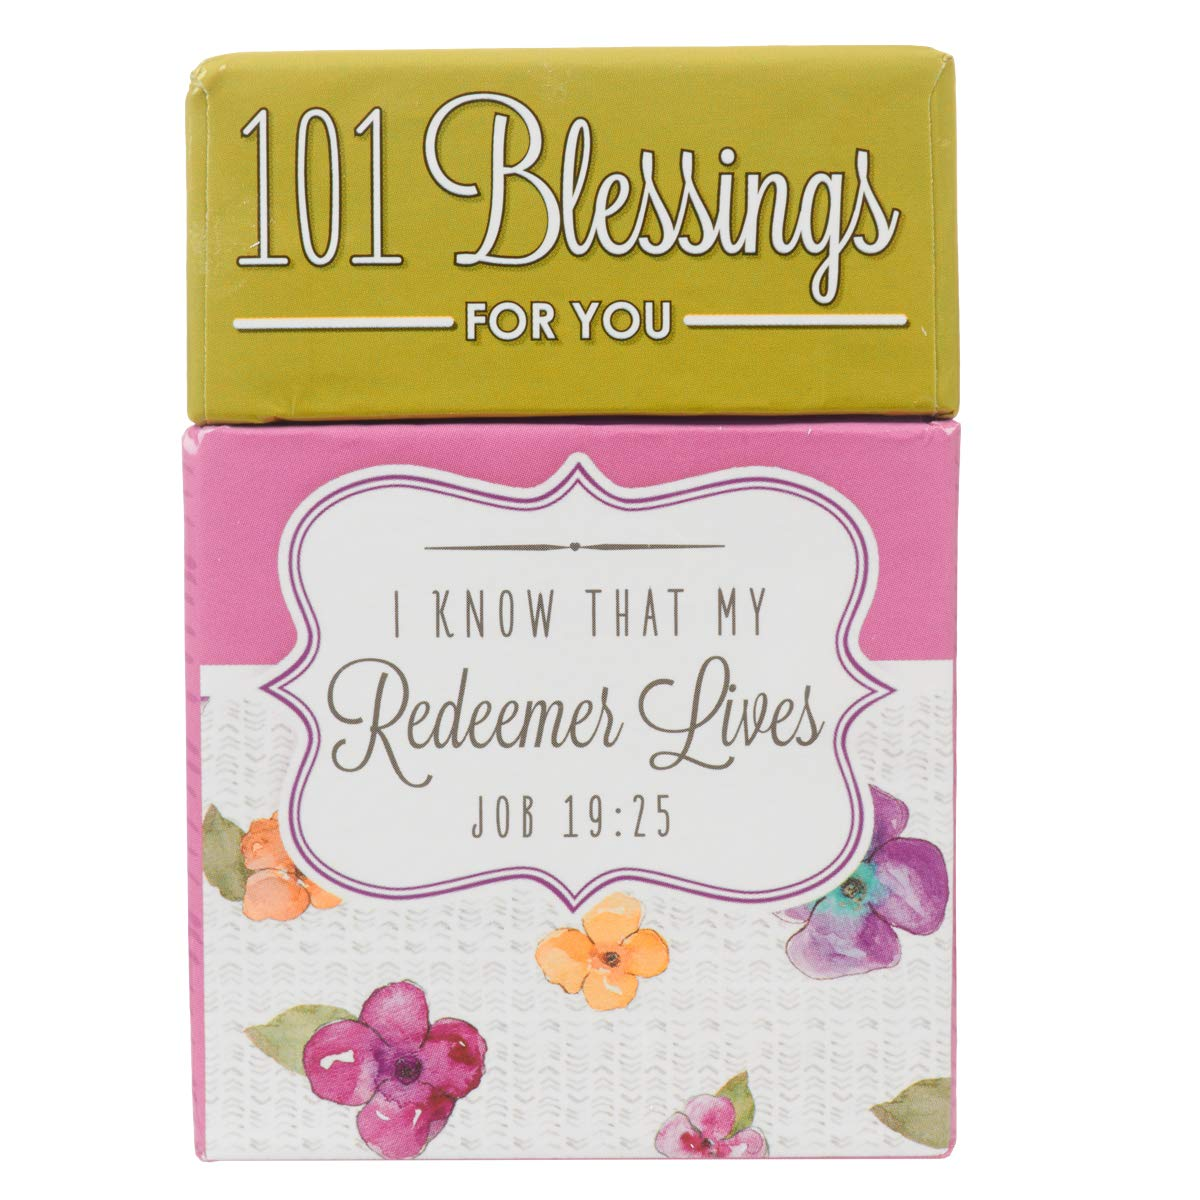 Download 101 Blessings for You Devotional Cards - A Box of Blessings ebook